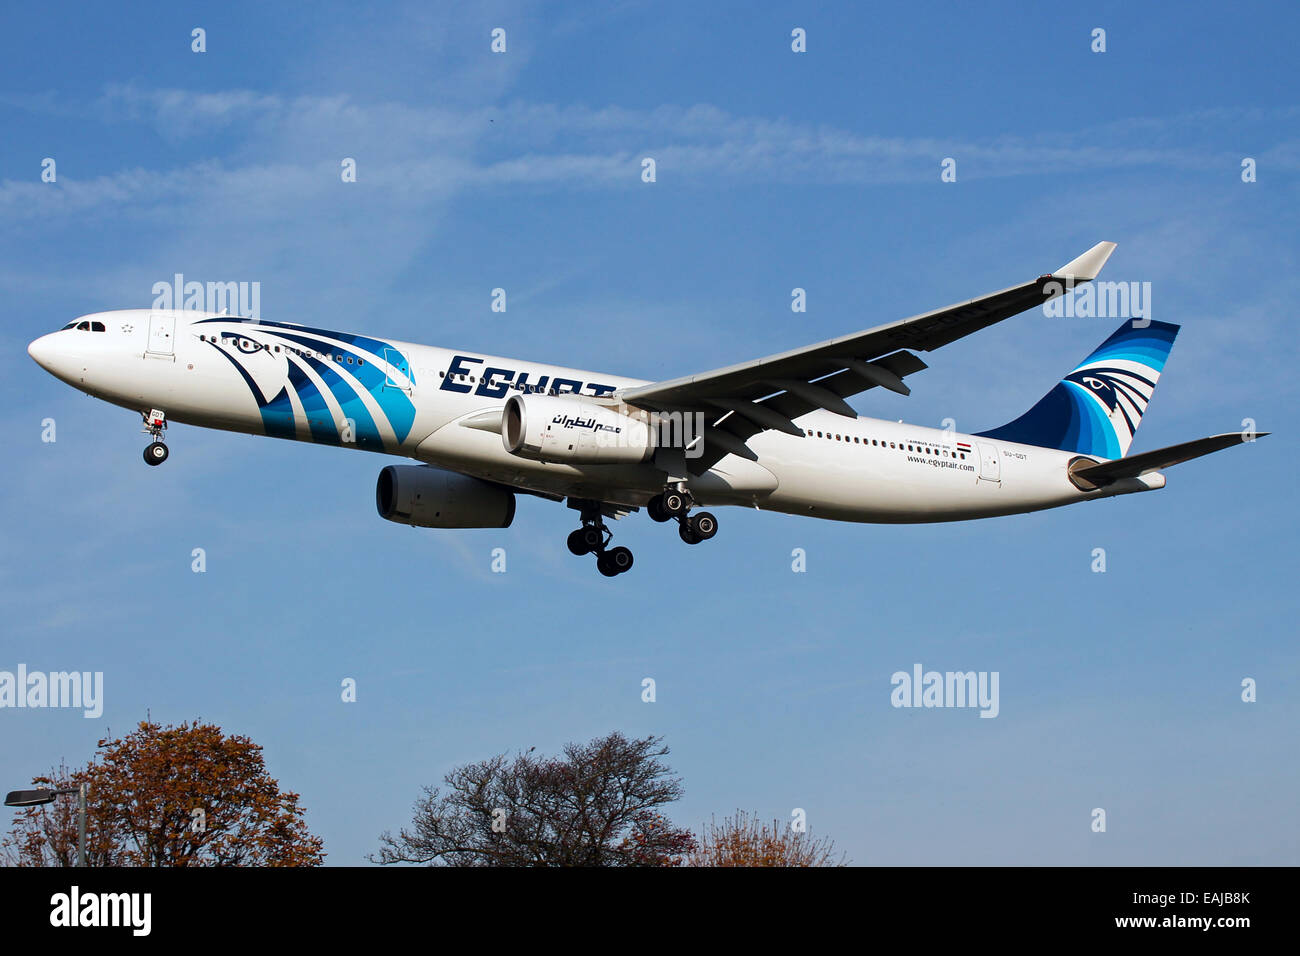 Egyptair Airbus A330-300 approaches runway 27L at London Heathrow Airport. - Stock Image